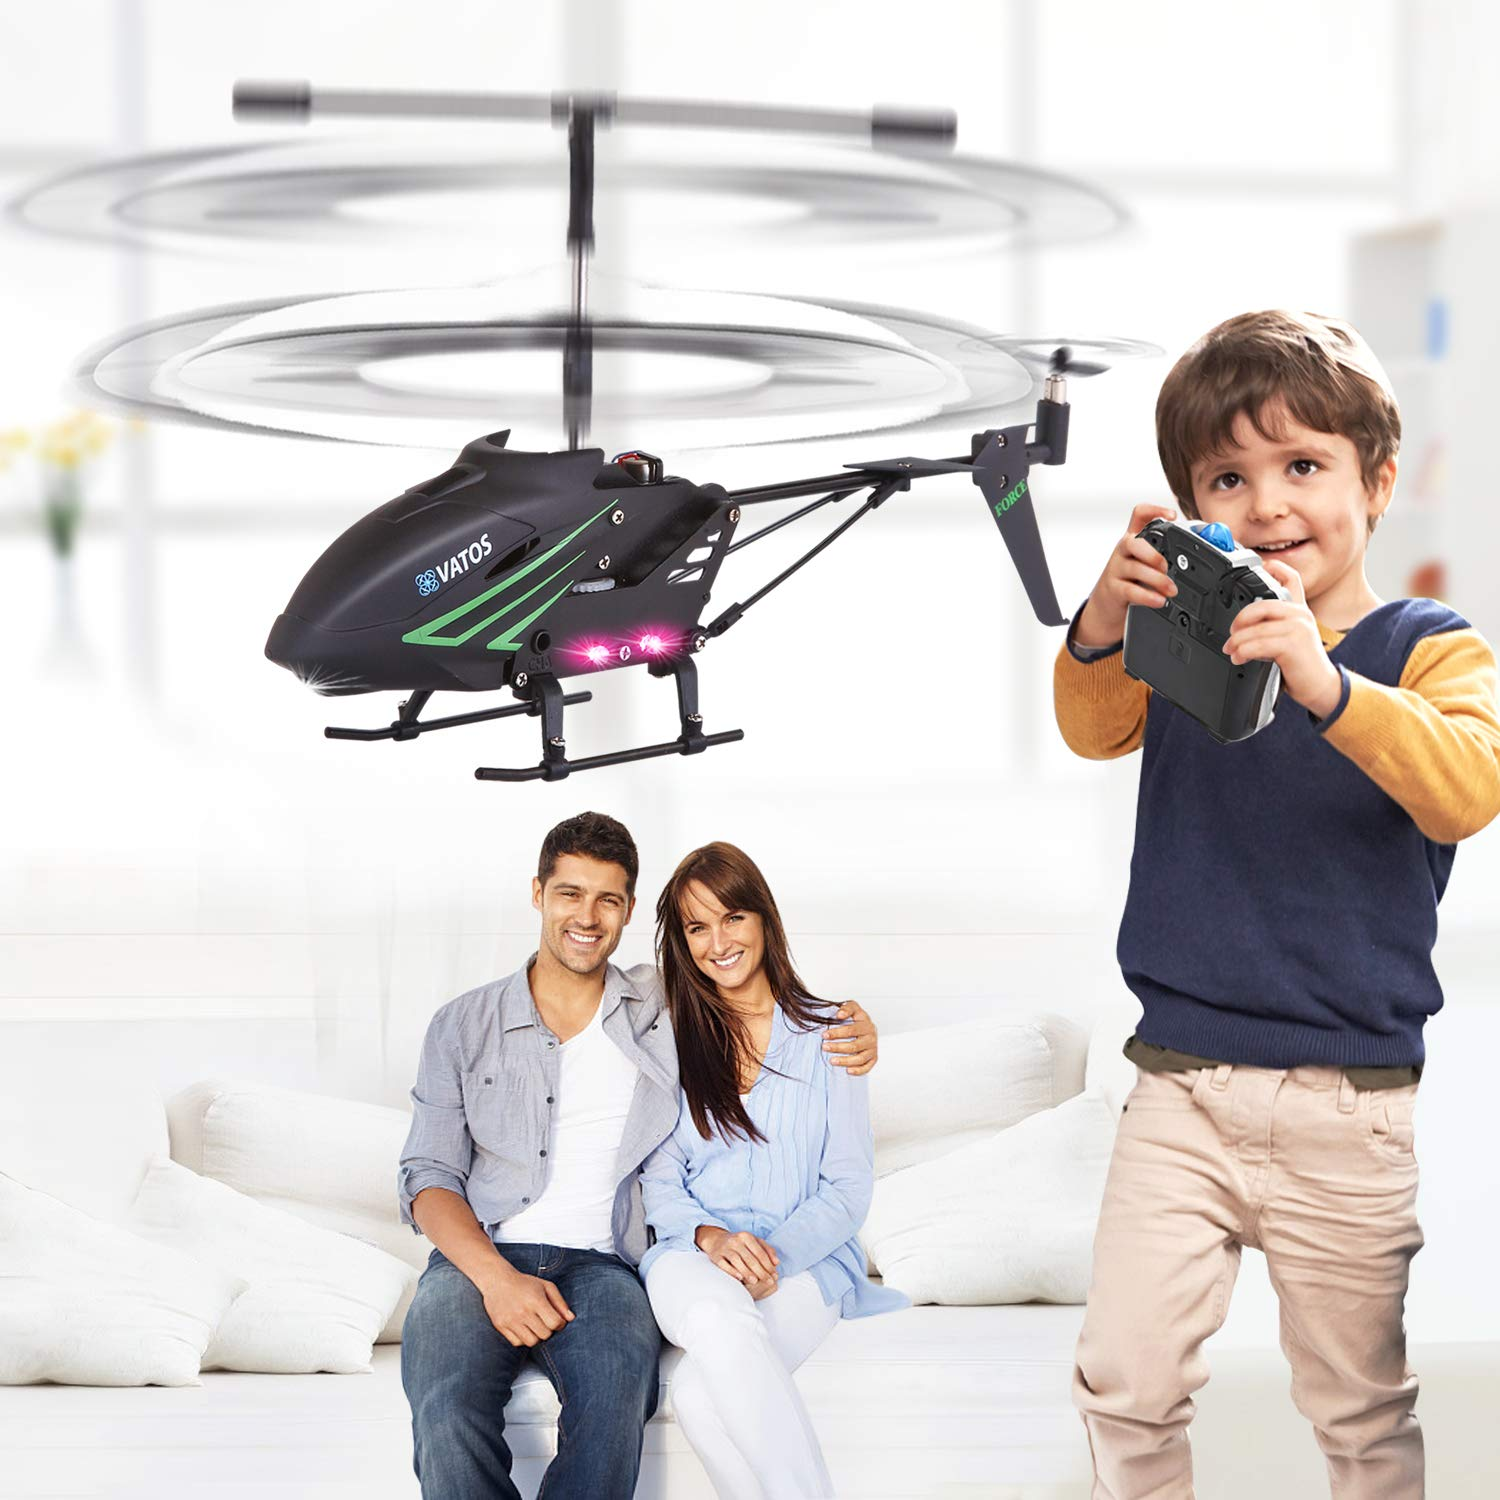 RC Helicopter, Remote Control Helicopter with Gyro and LED Light 3.5HZ Channel Alloy Mini Helicopter Remote Control for Kids & Adult Indoor Outdoor Micro RC Helicopter Best Helicopter Toy Gift by VATOS (Image #8)